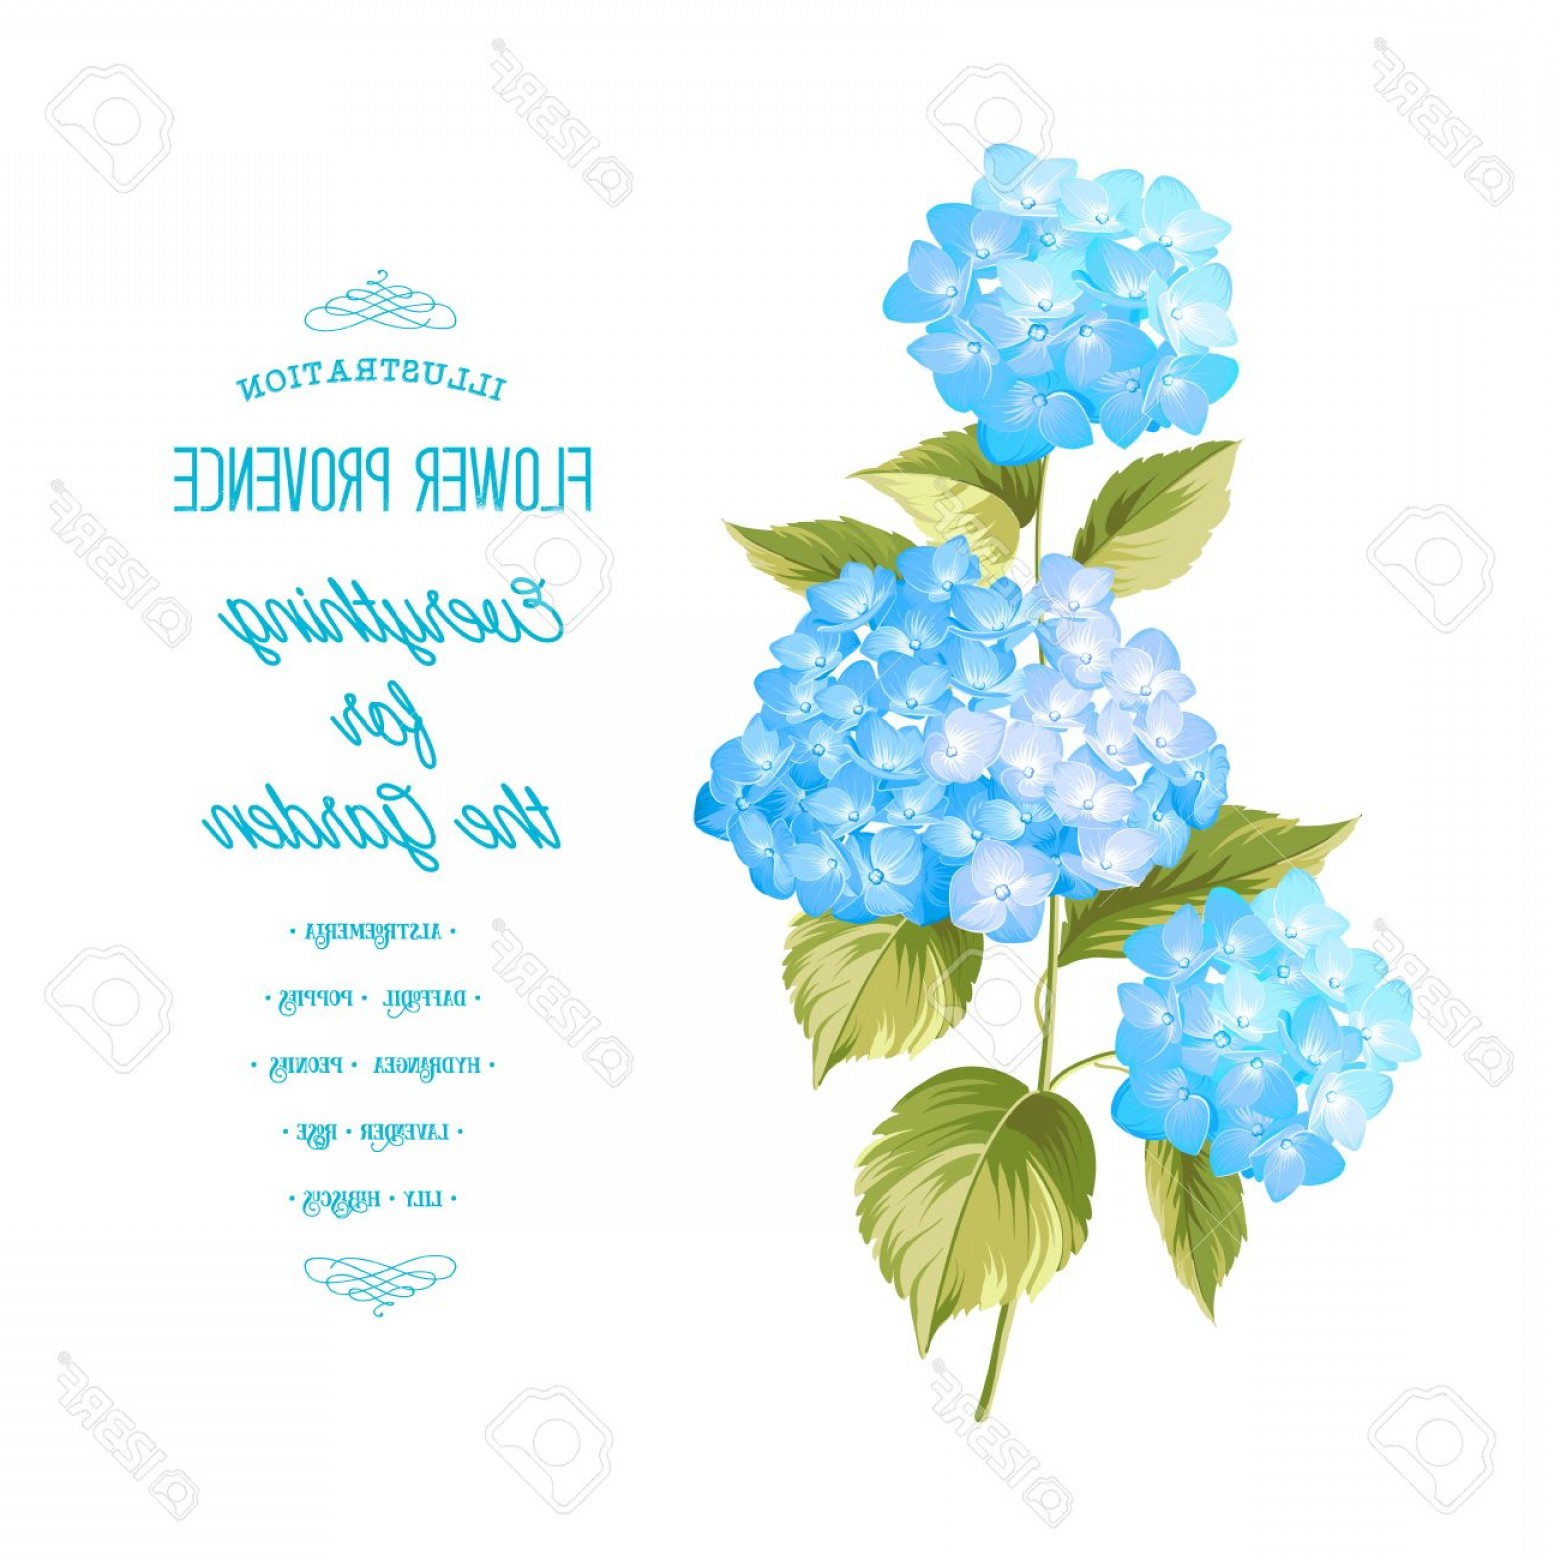 Hydrangea Vector Graphics: Photostock Vector Hortensia Flower Blue Realistic Hydrangea Illustration Of Flowers Vintage Art Can Be Used For Invita